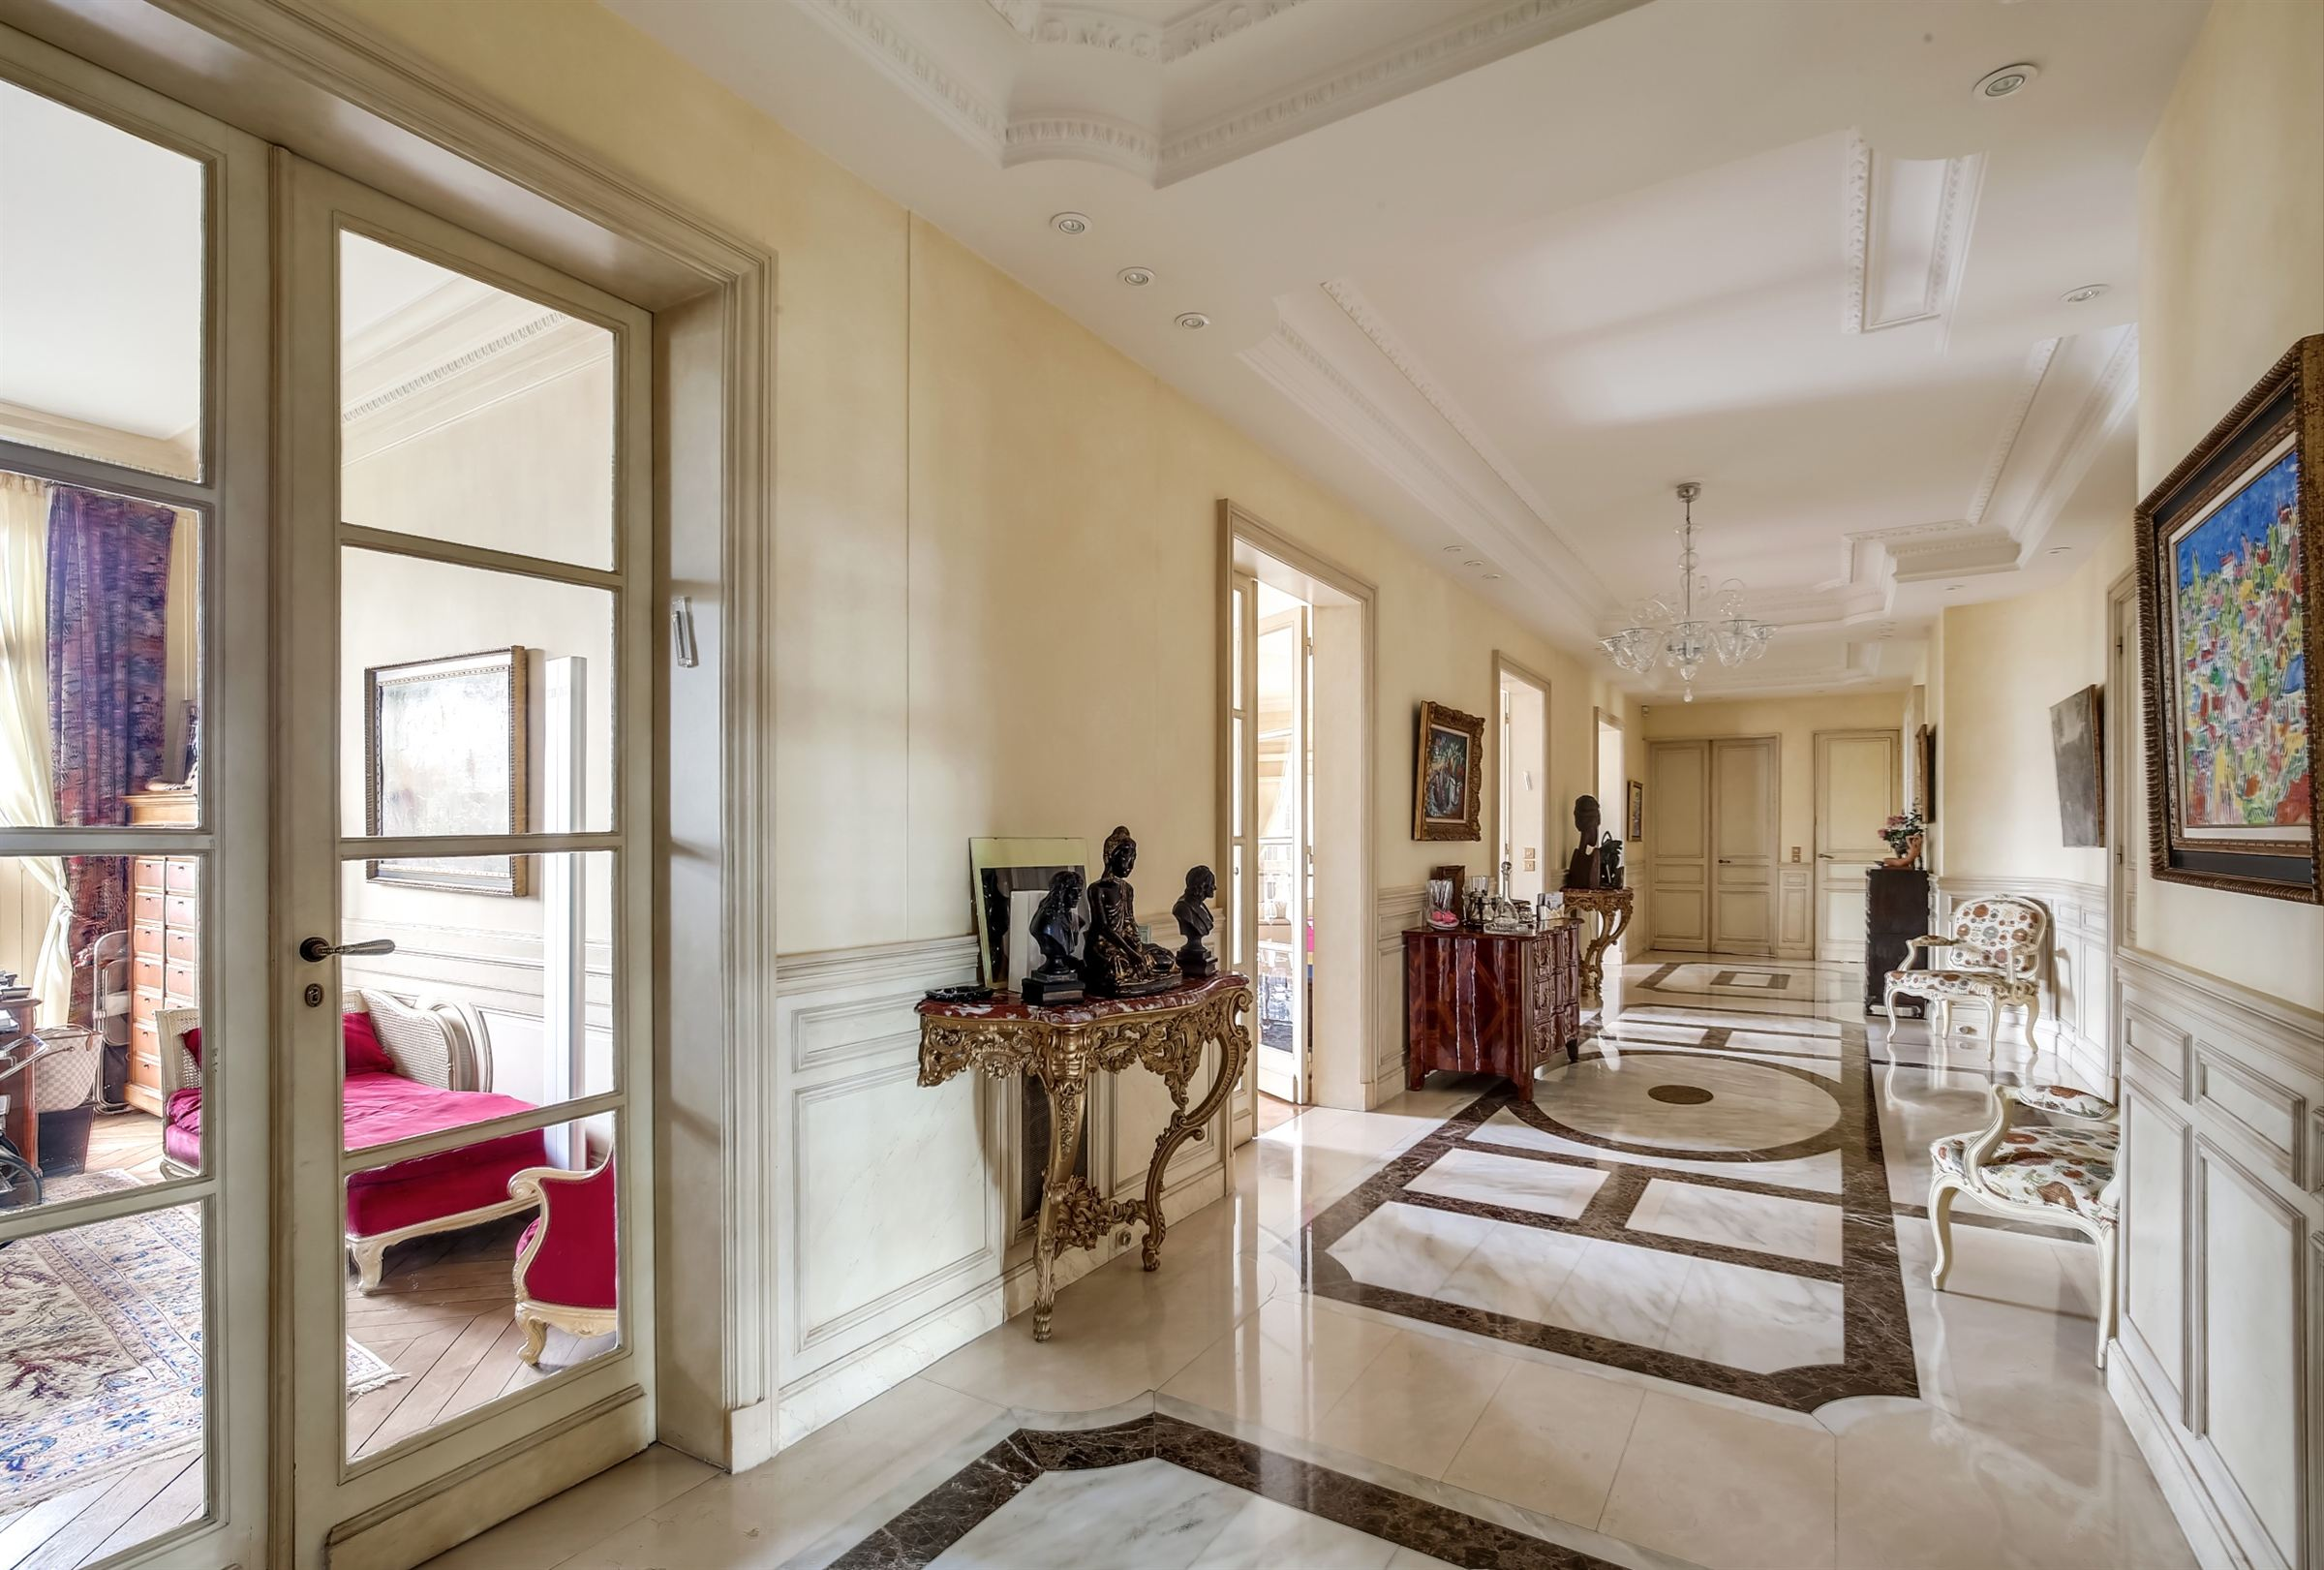 sales property at Apartment on high floor for sale in Paris 16th - Foch - Flandrin